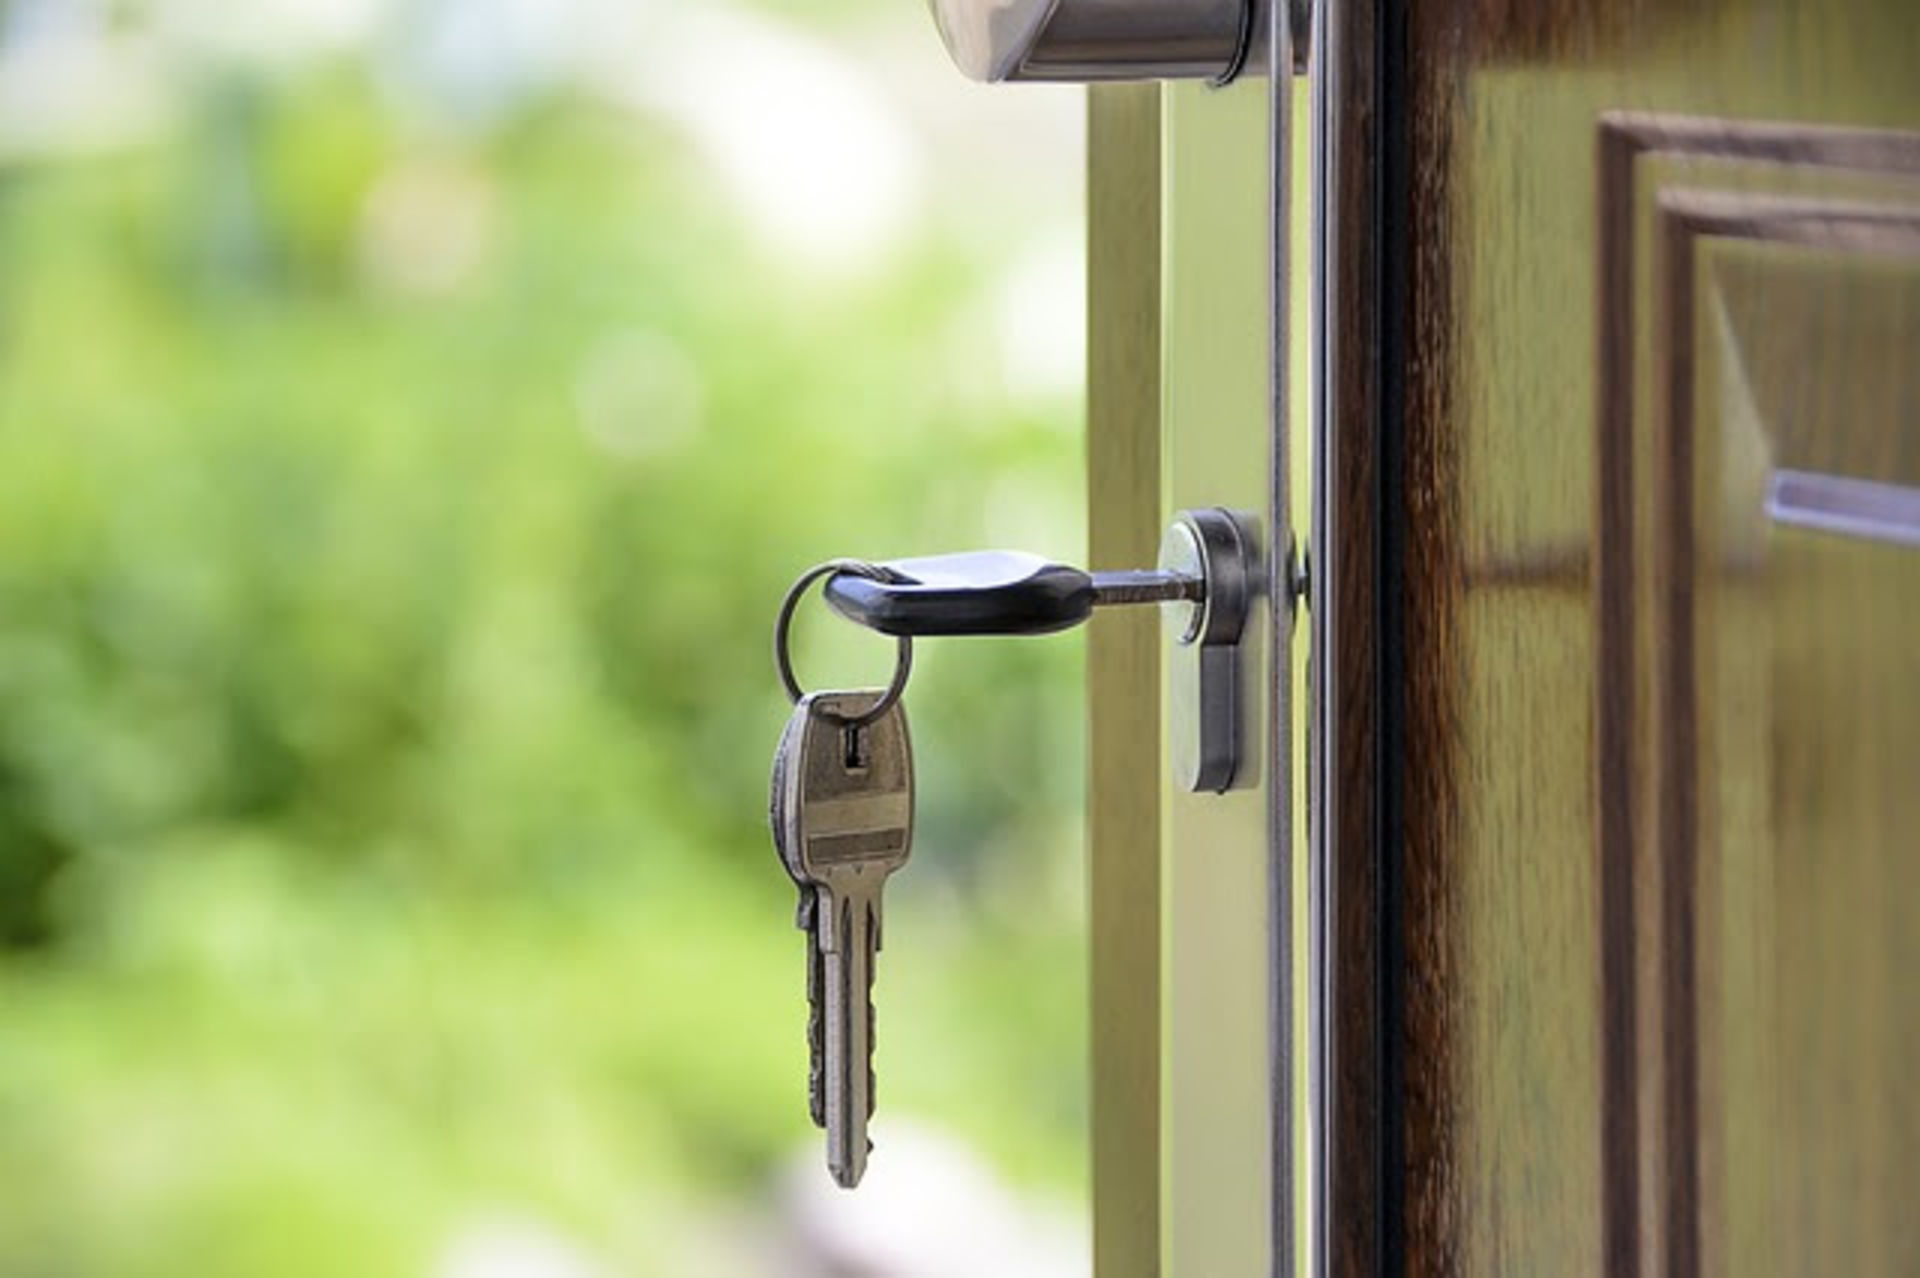 What Type Of Insurance Do I Need If I'm Renting Out My Home?